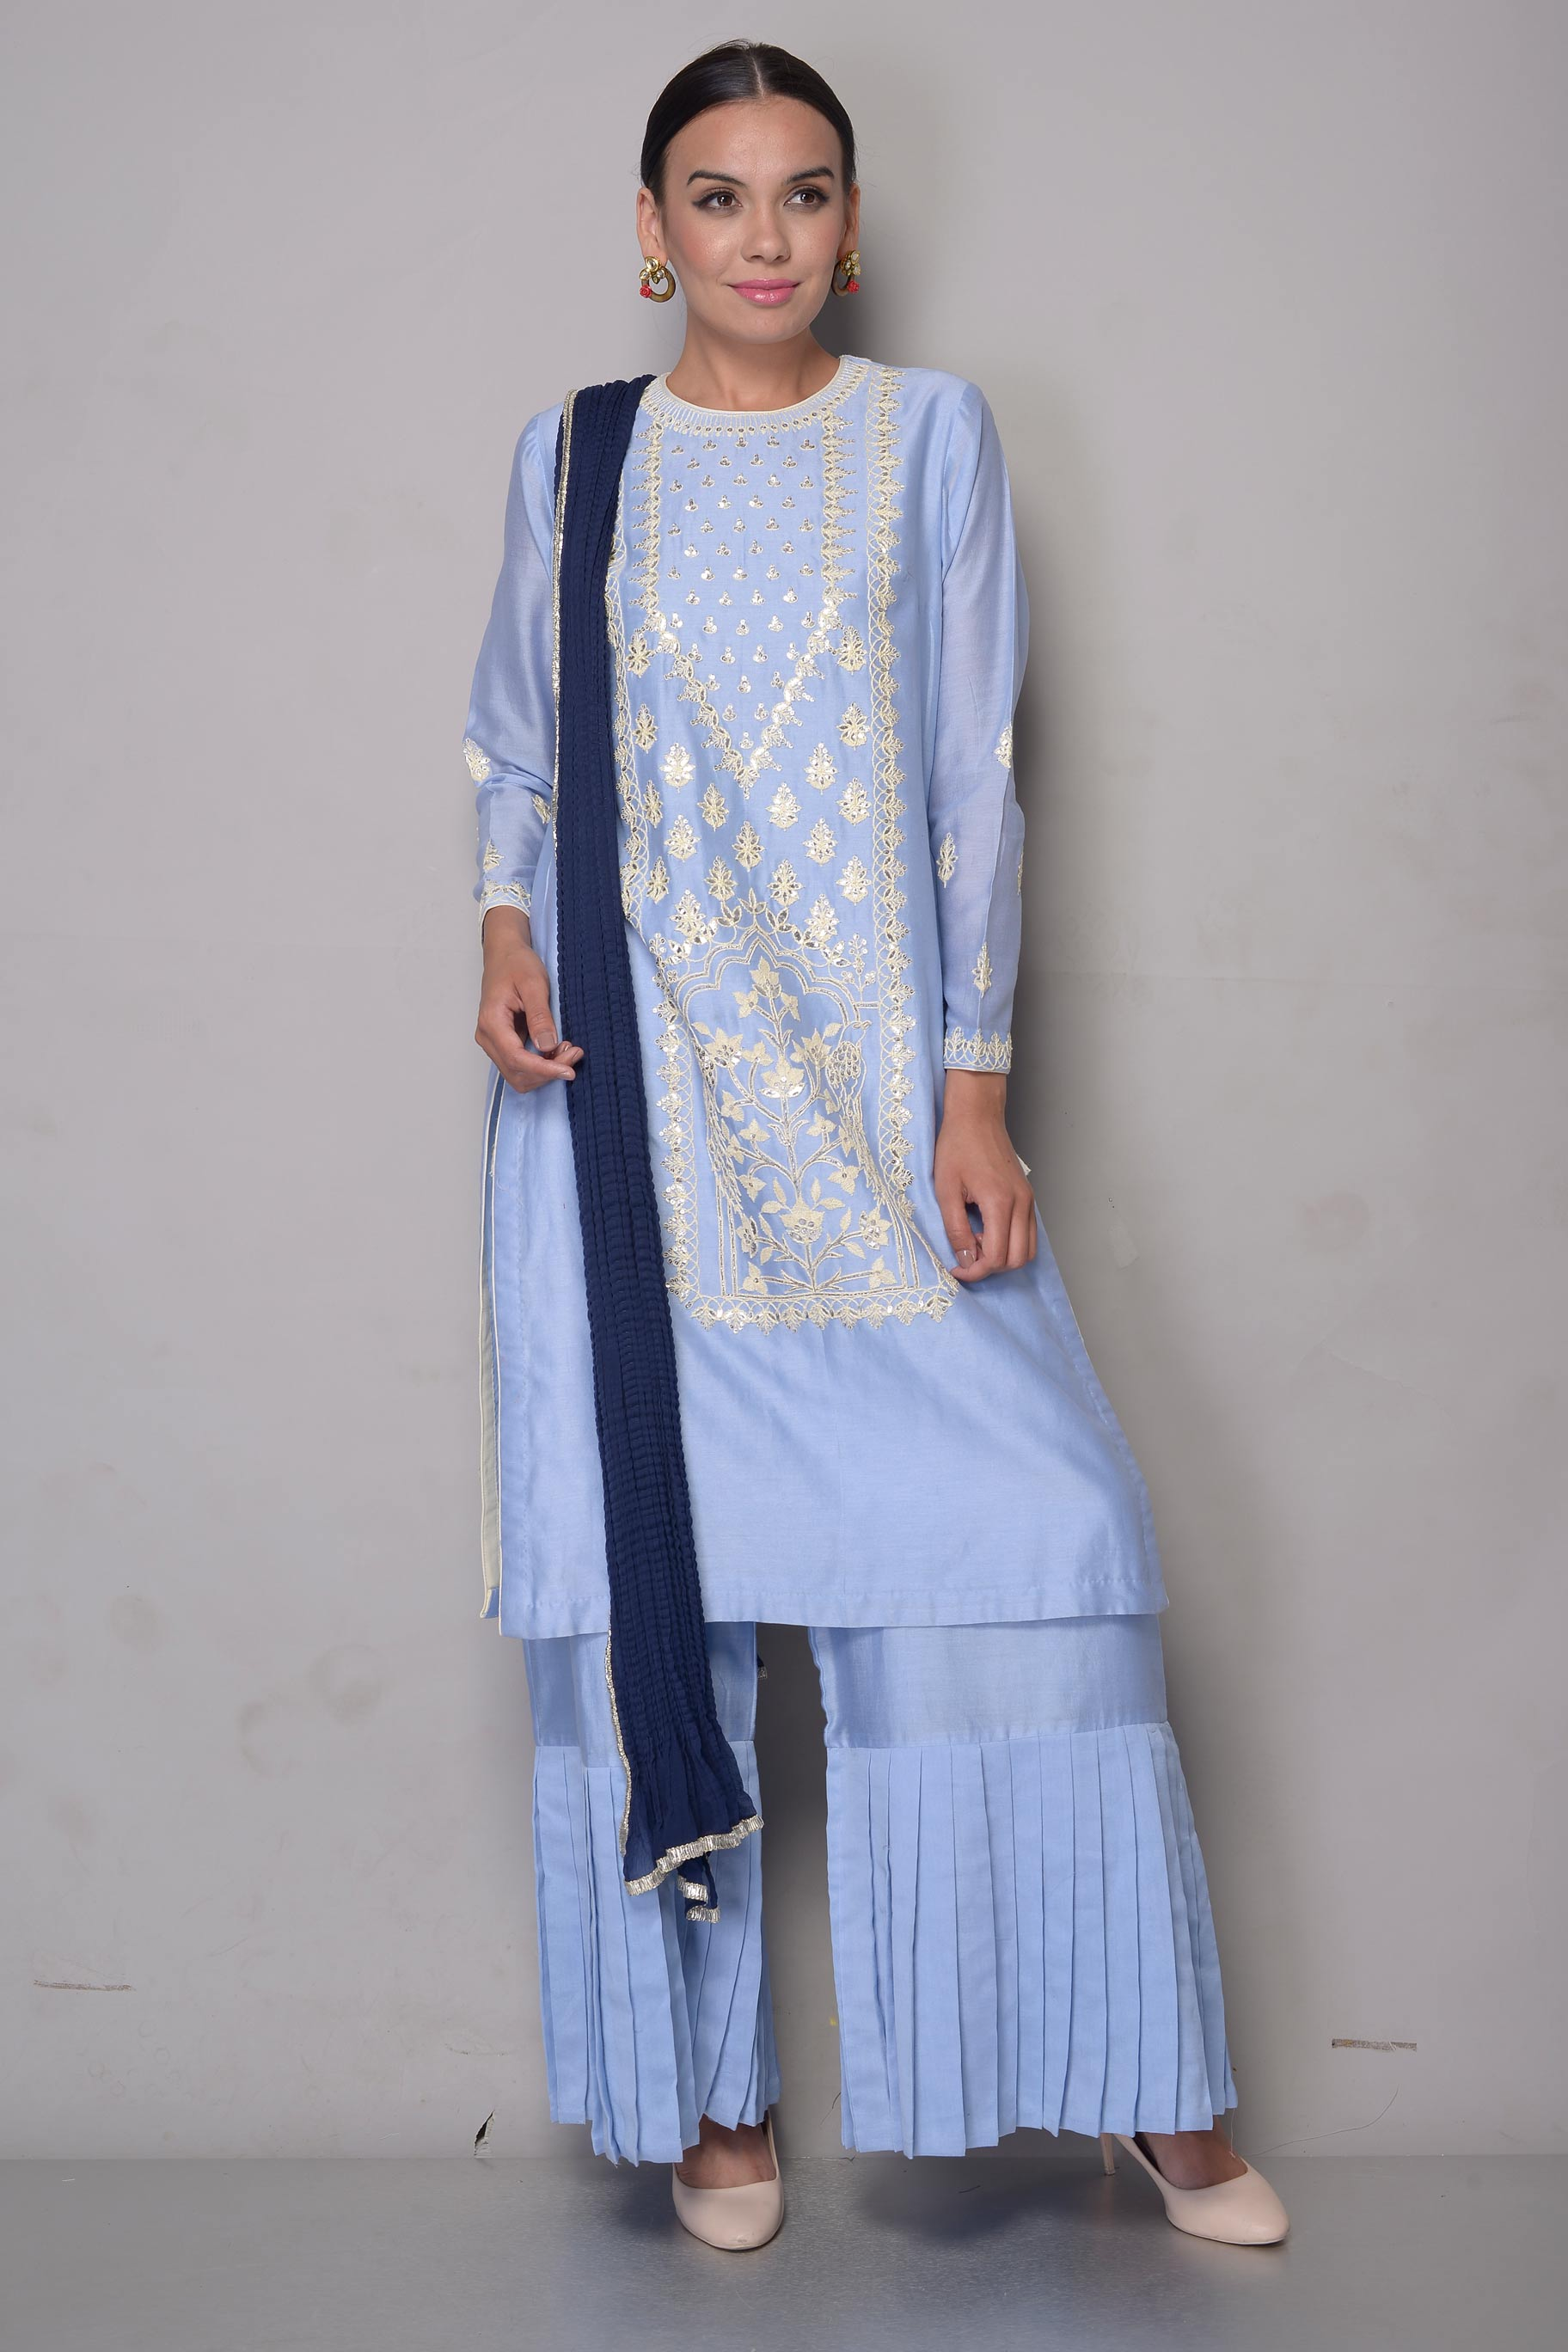 Buy sky blue gota patti chanderi suit with sharara online in USA and navy blue dupatta. To buy more such exquisite Indian designer suits in USA, shop at Pure Elegance Indian fashion store for women in USA or shop online.-full view